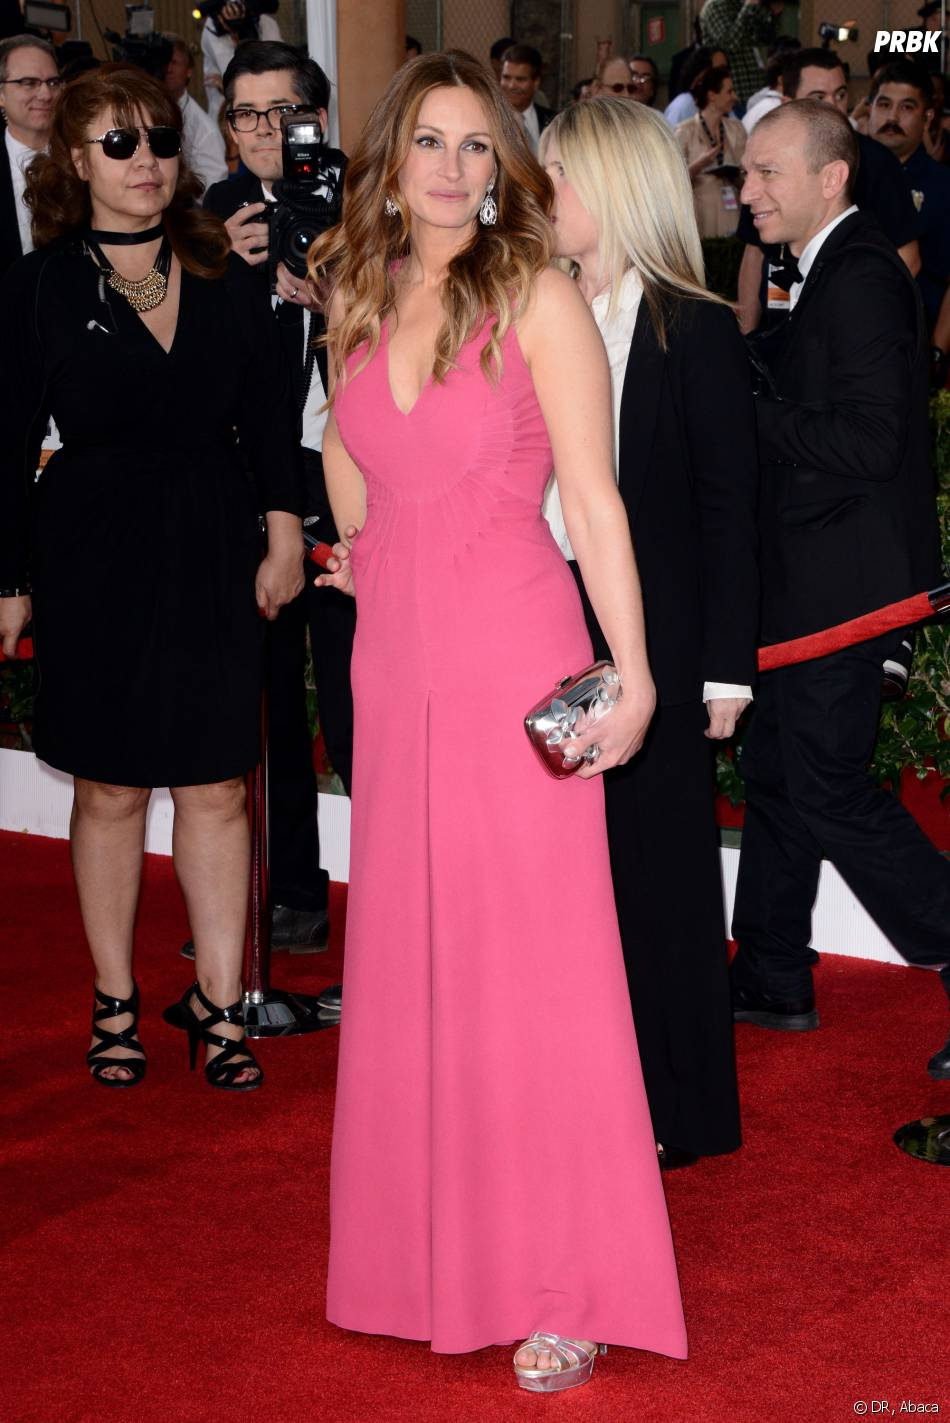 SAG Awards 2014 : Julia Roberts à Los Angeles le samedi 18 janvier